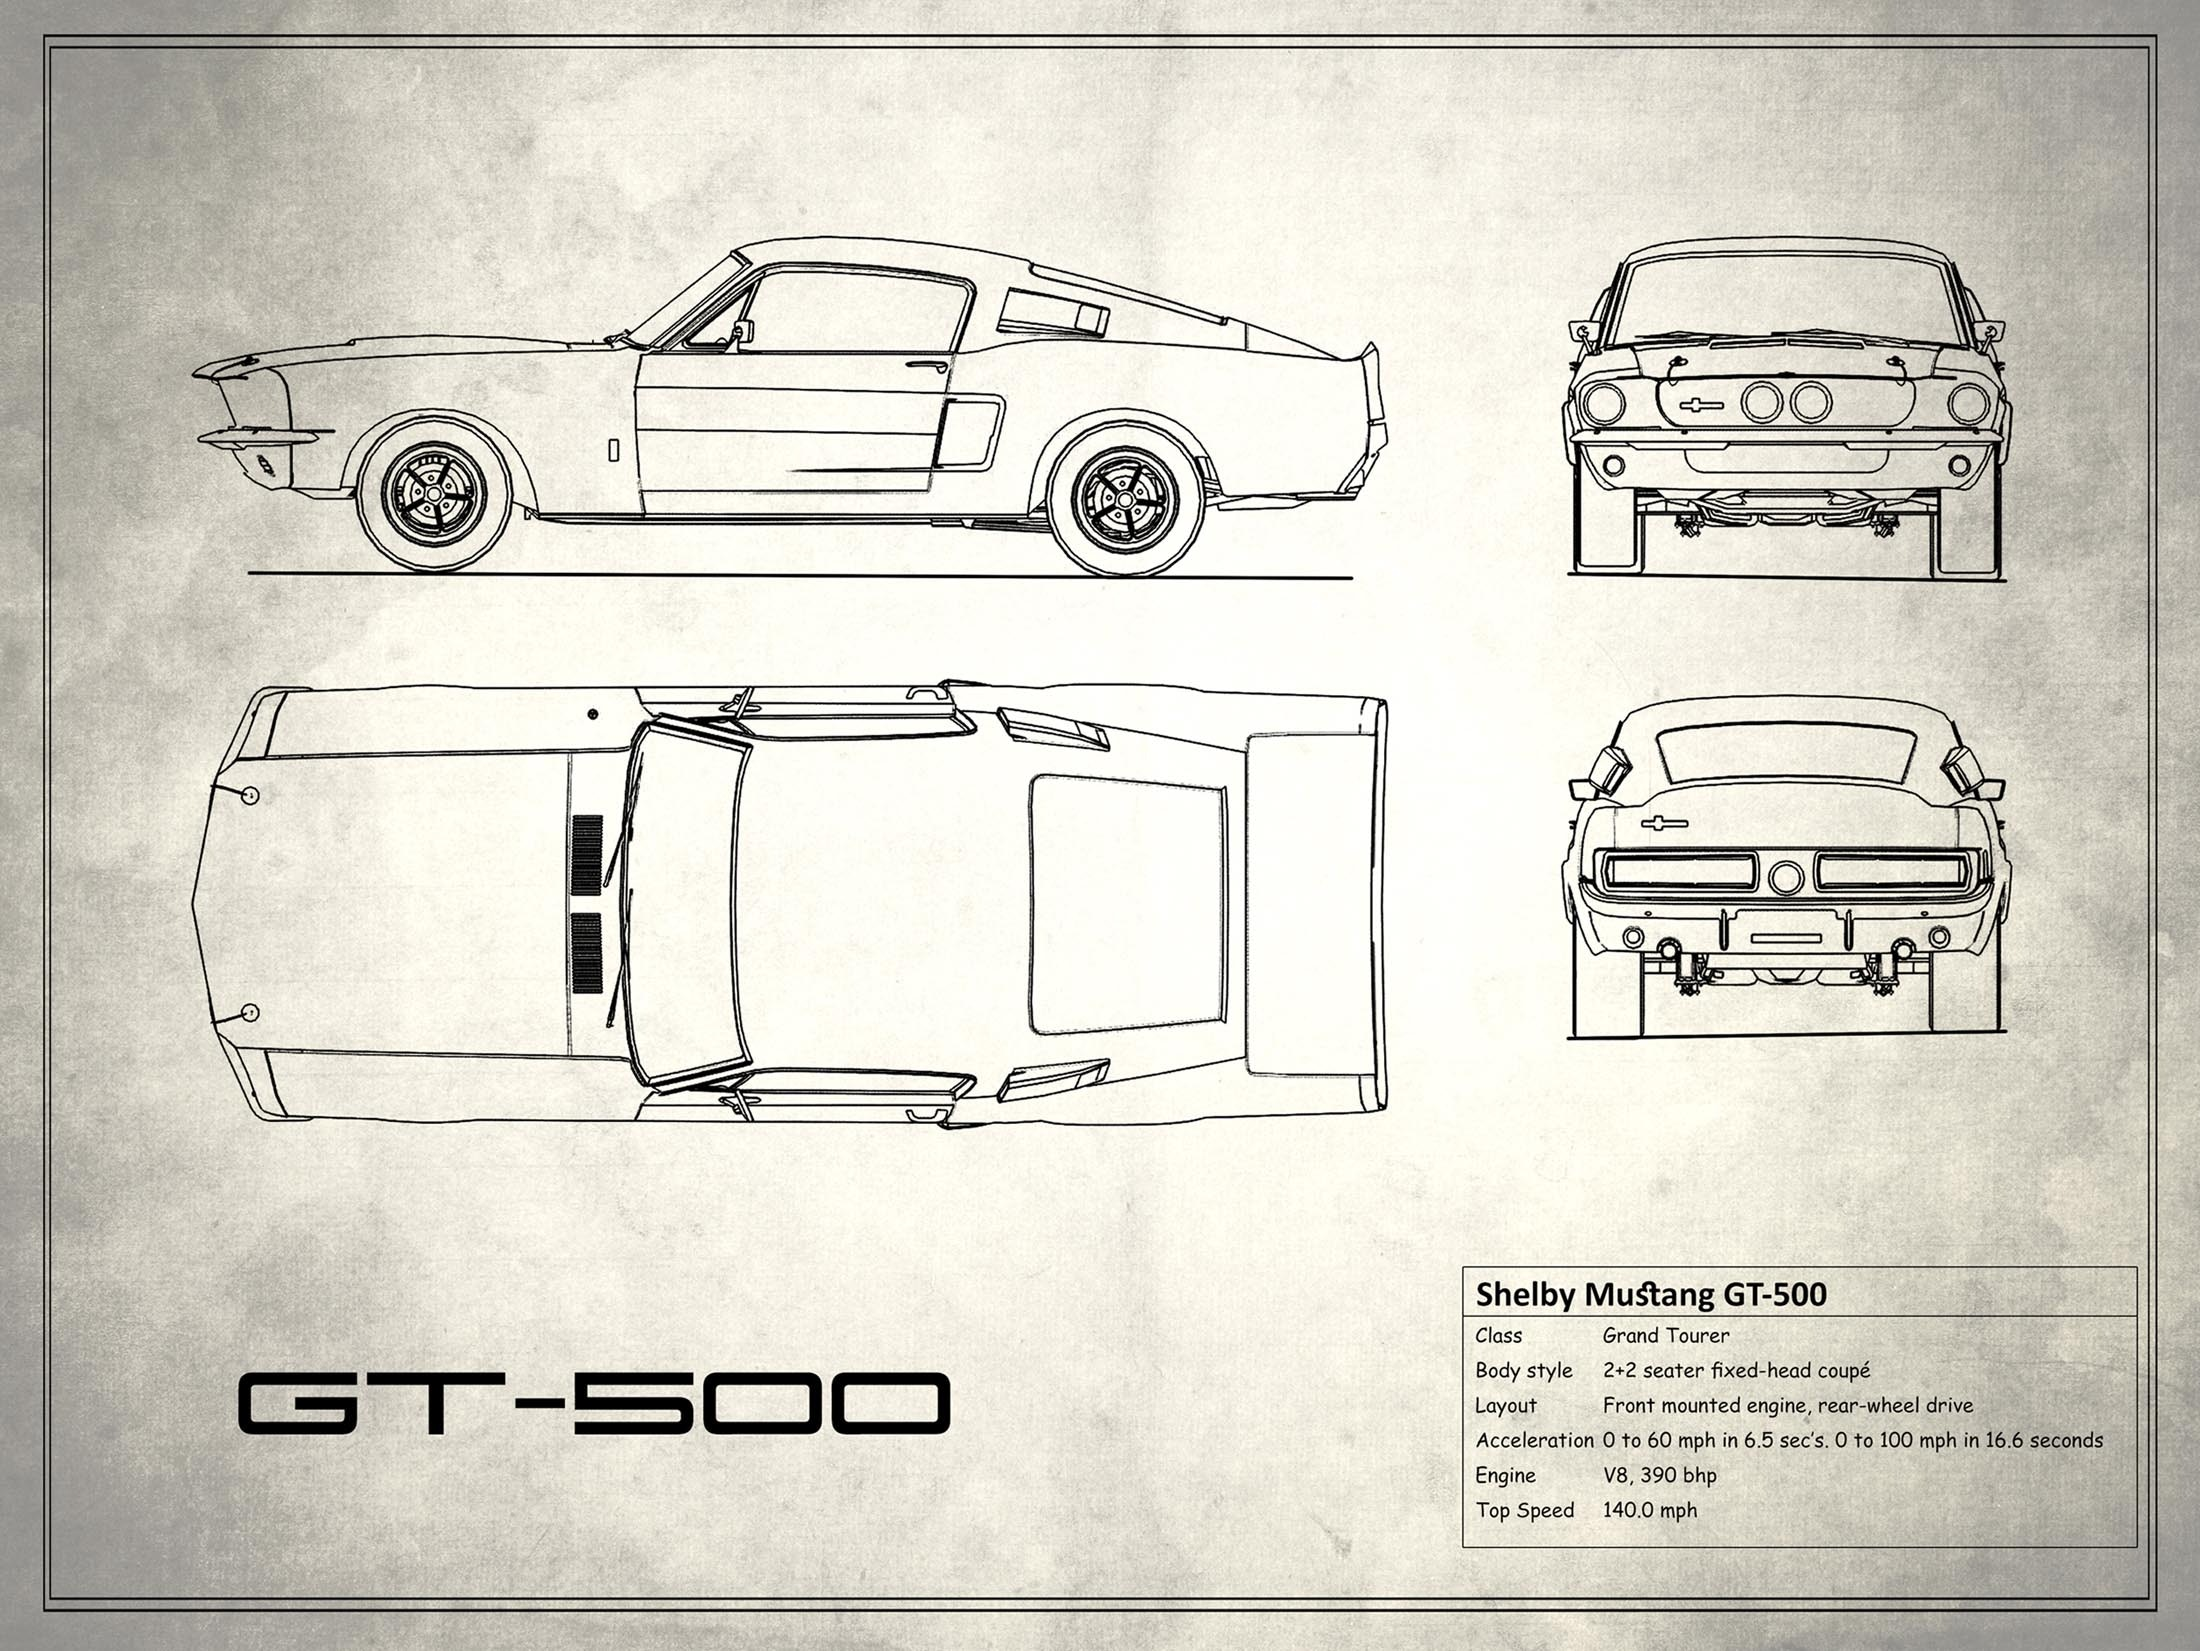 Shelby Mustang GT500 - White